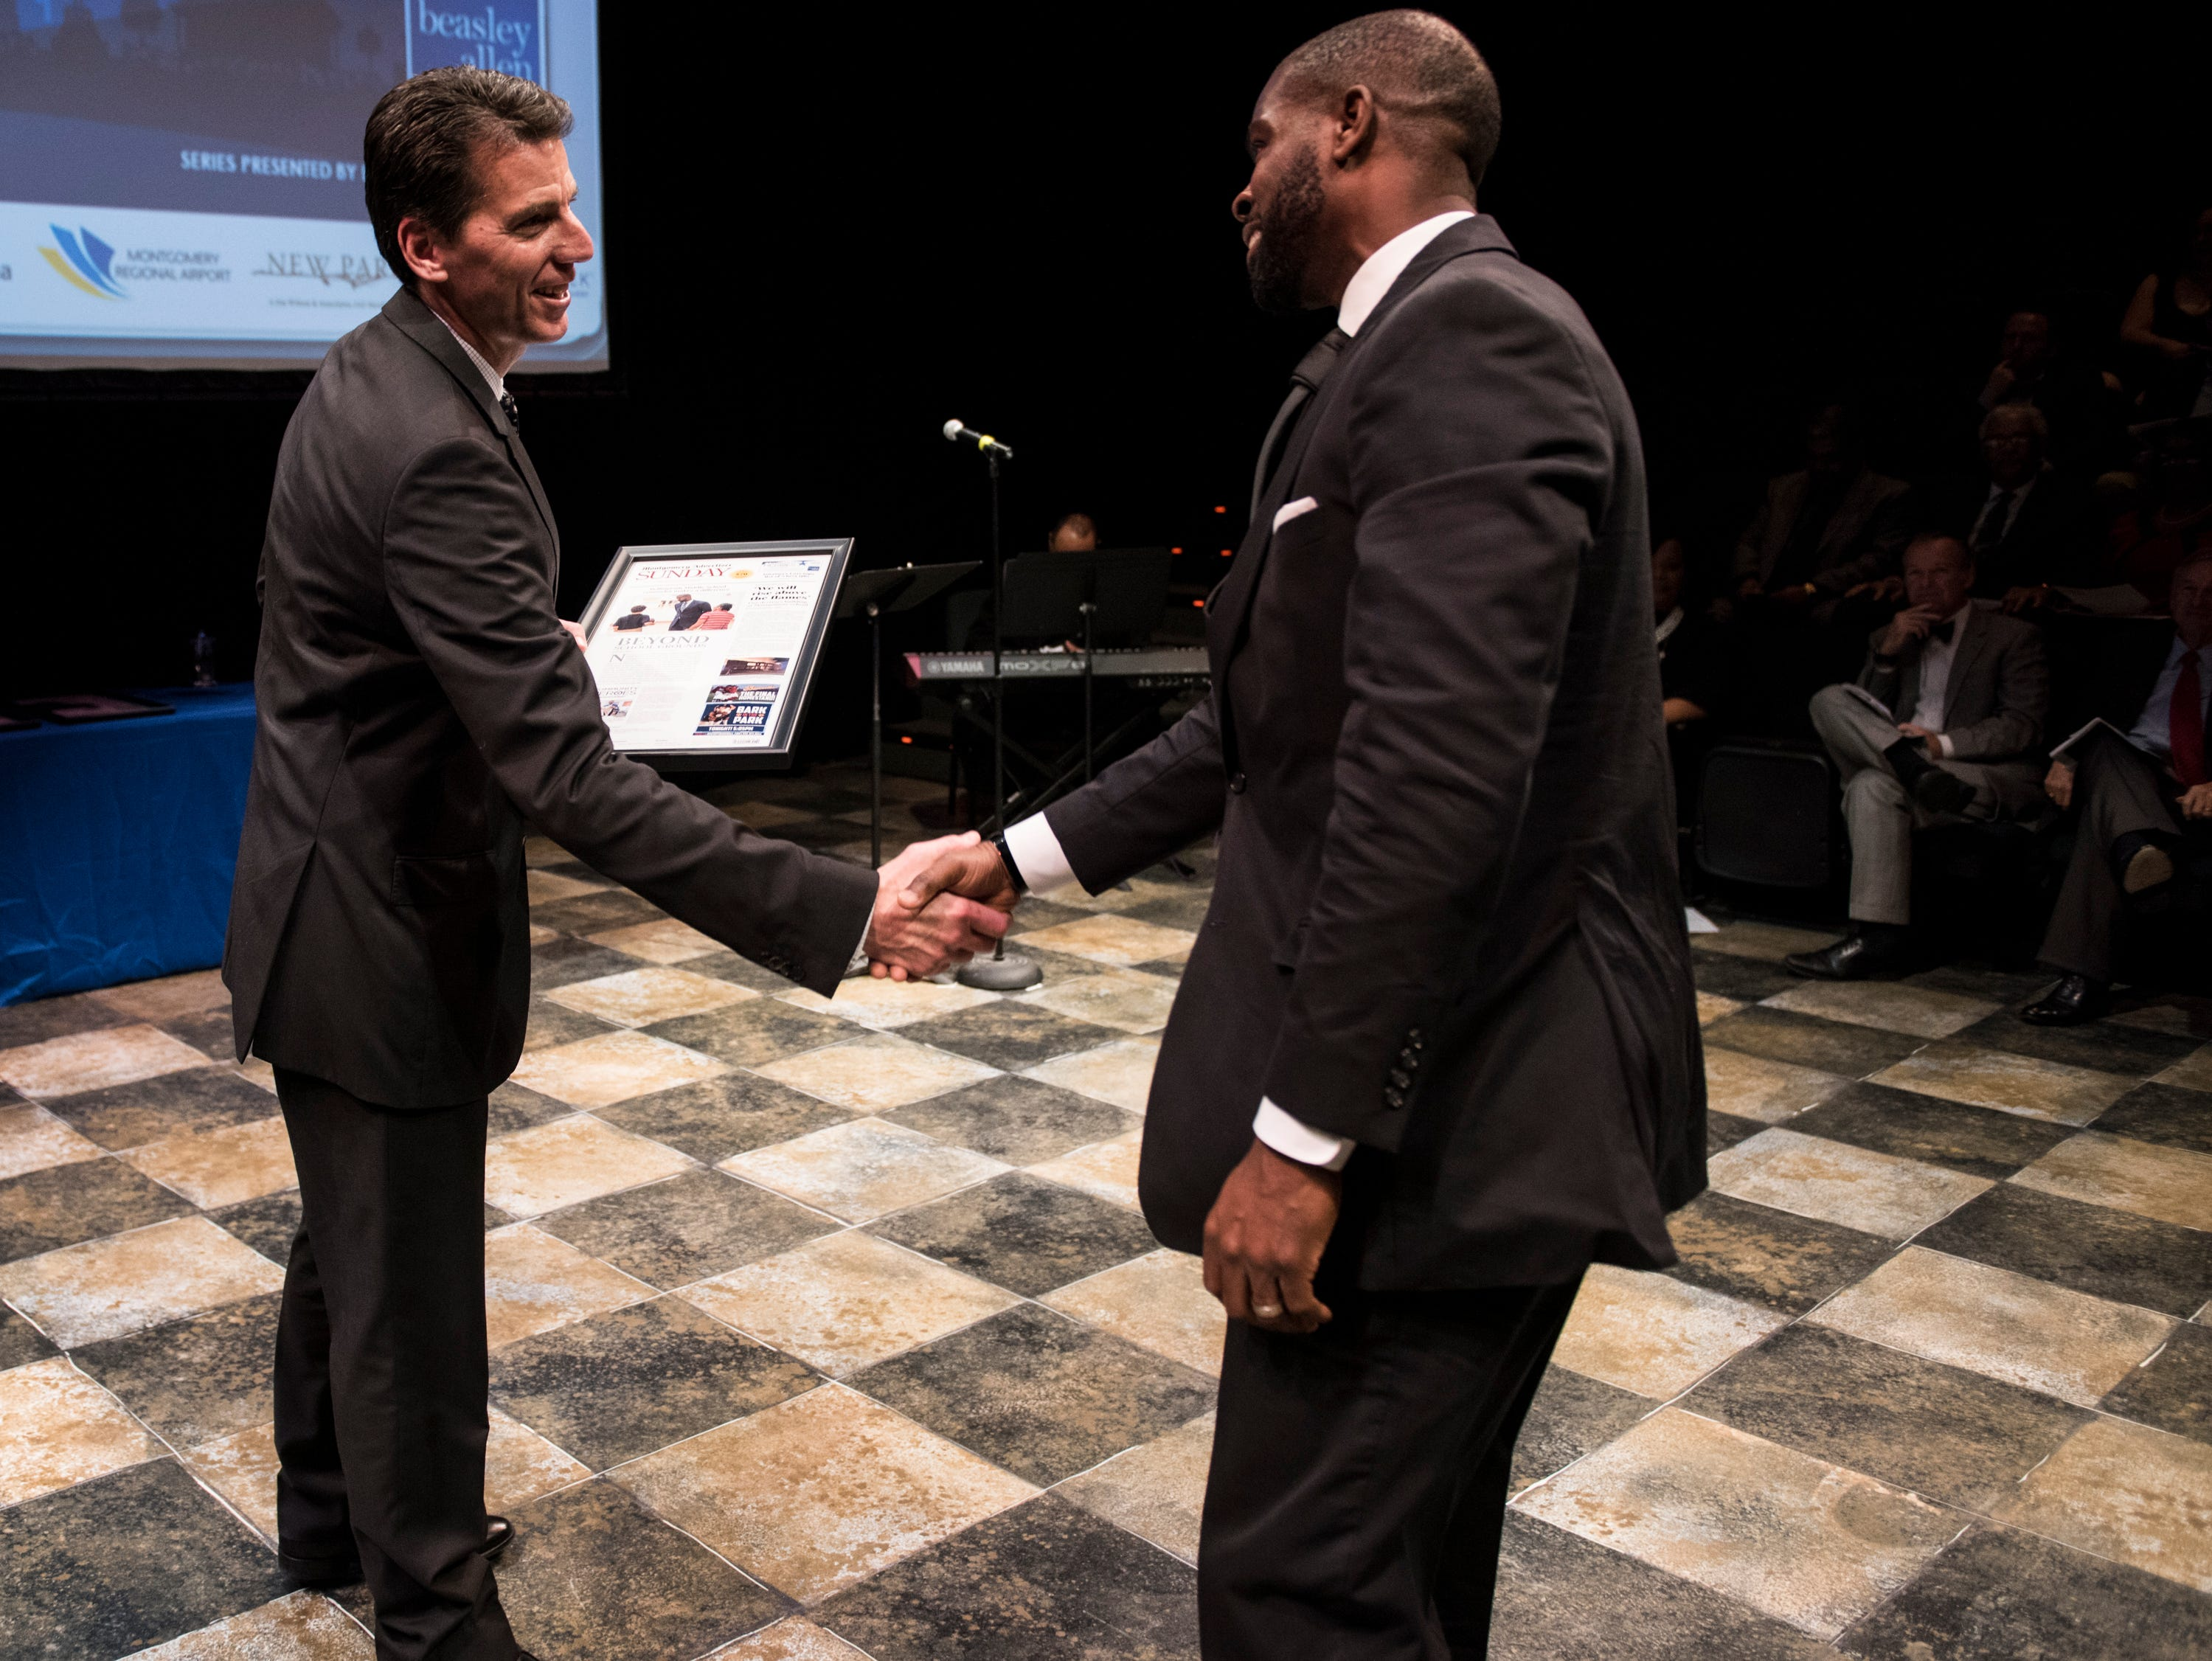 Montgomery Advertiser publisher Michael Galvin awards Thomas Tullis during the Community Heroes awards ceremony at Alabama Shakespeare Festival in Montgomery, Ala., on Tuesday, Jan. 8, 2019.